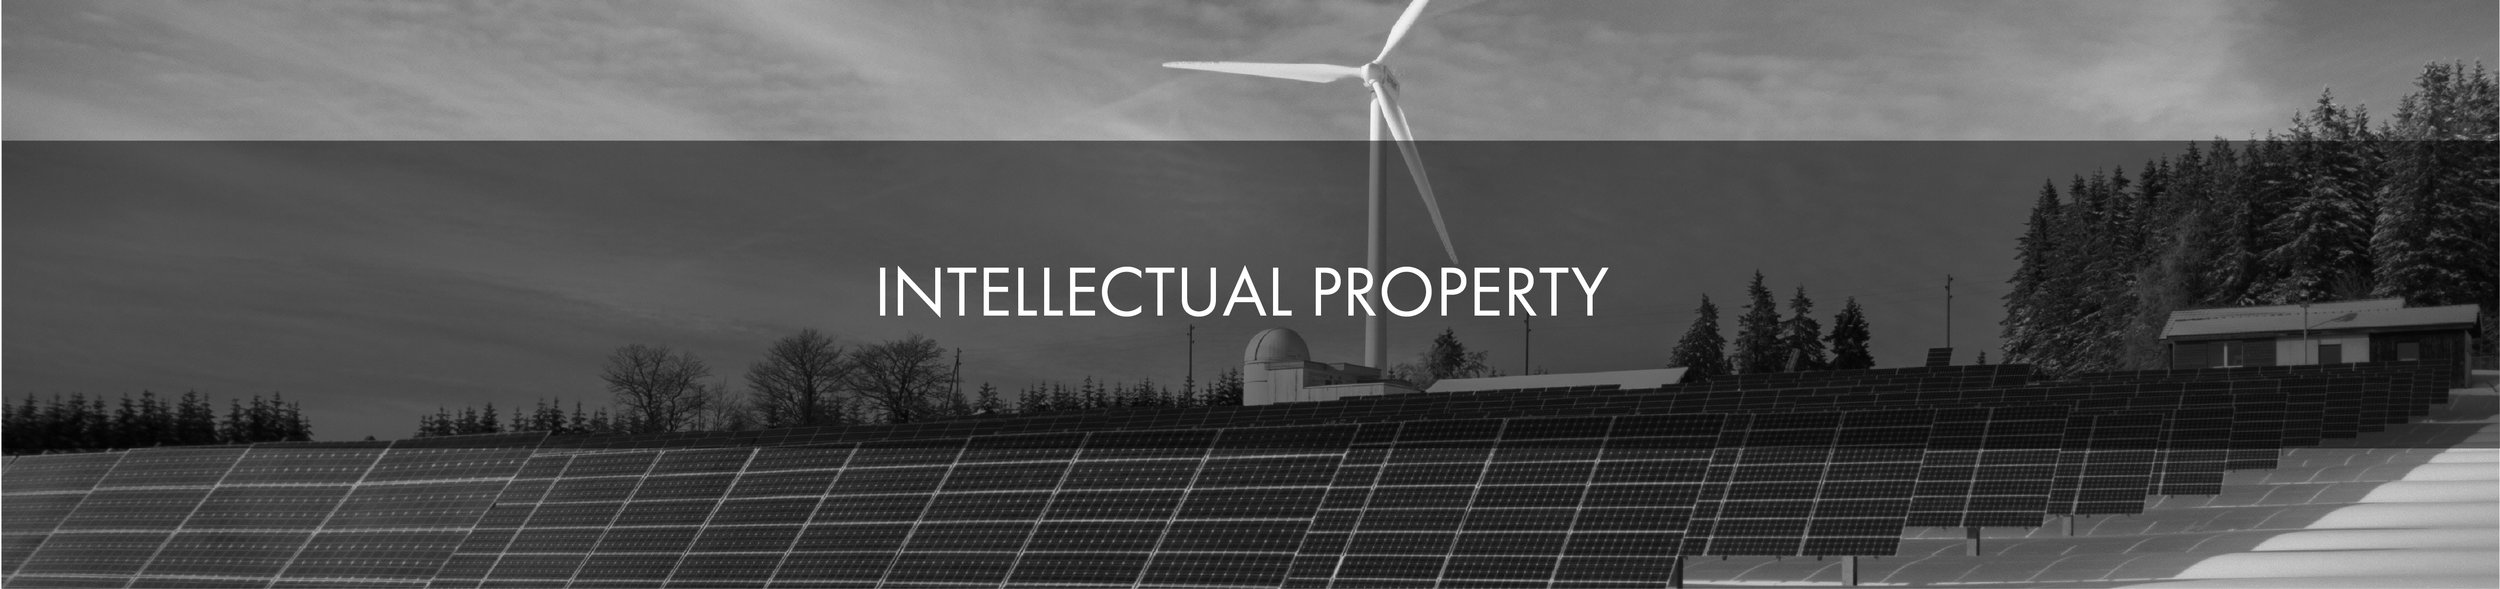 Block45-denver-intellectual-property-ip-lawyer.jpg